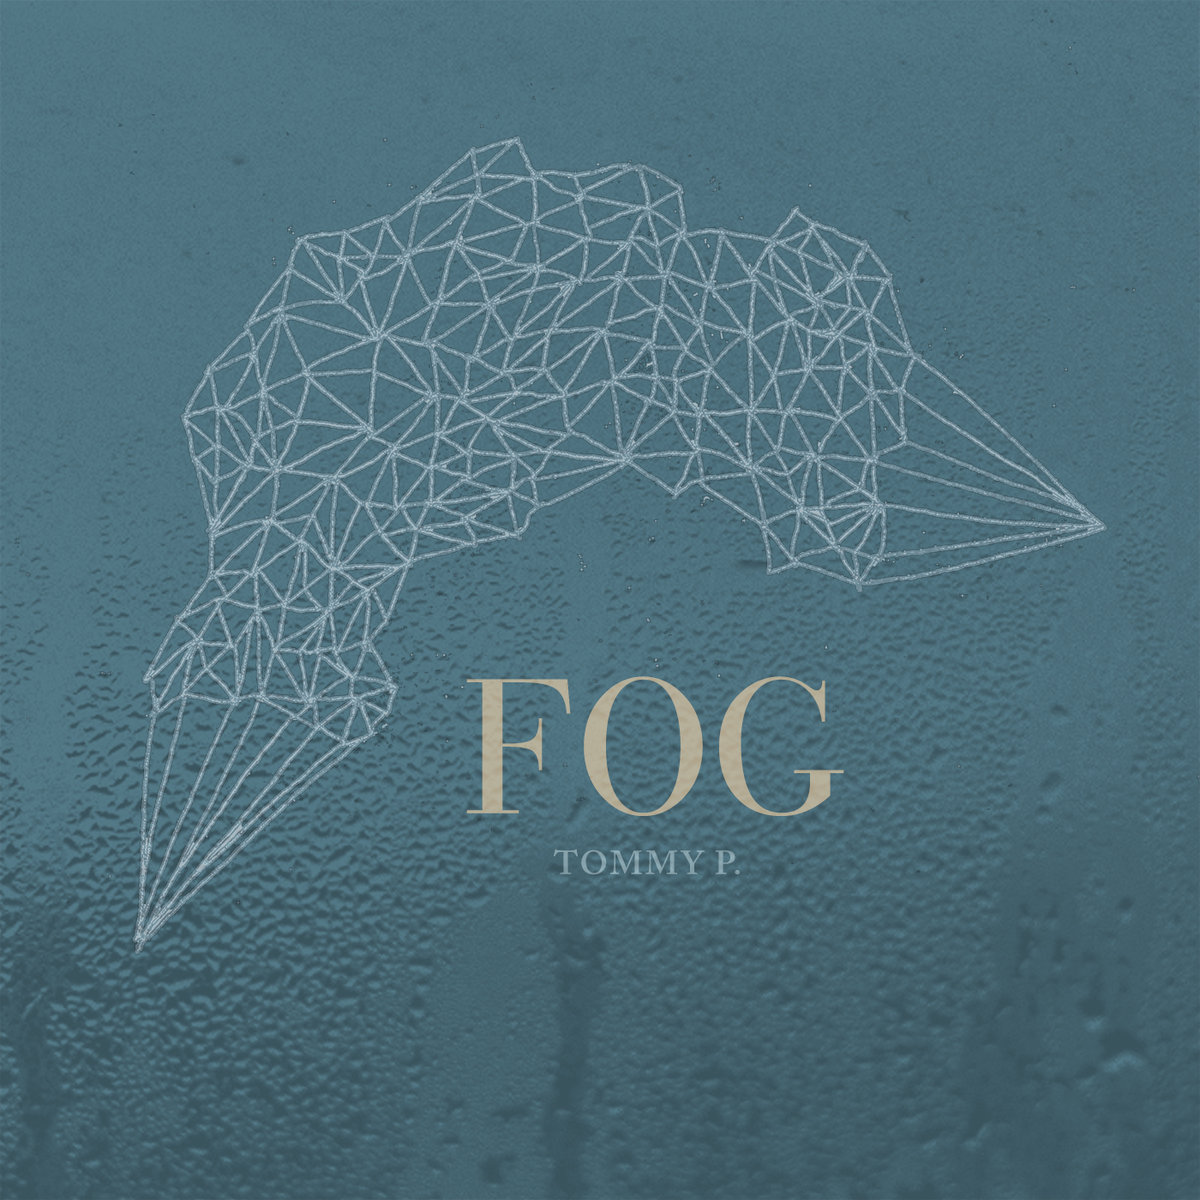 Tommy P. - Actor @ 'Fog' album (11th ave records, 11thaverecords 11th avenue)